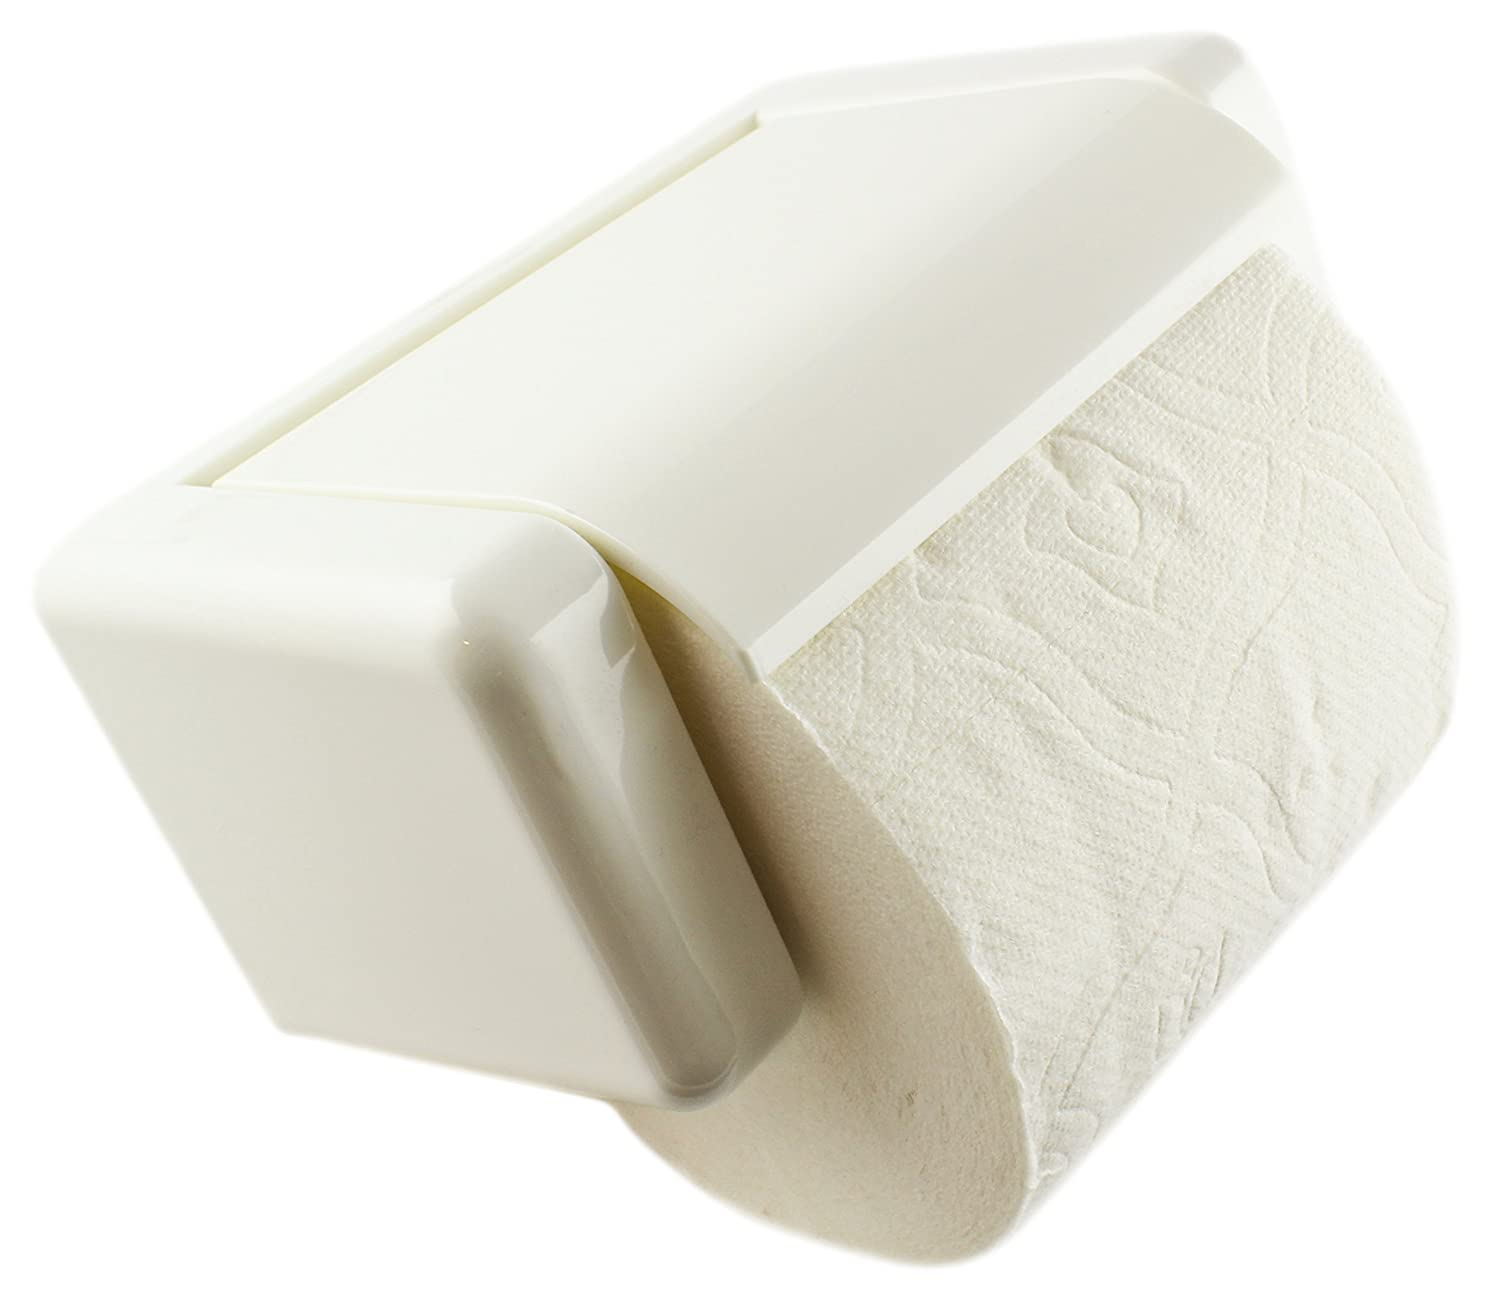 Zoie + Chloe Easy-Snap Toilet Paper Holder - Load and Unload with One Hand